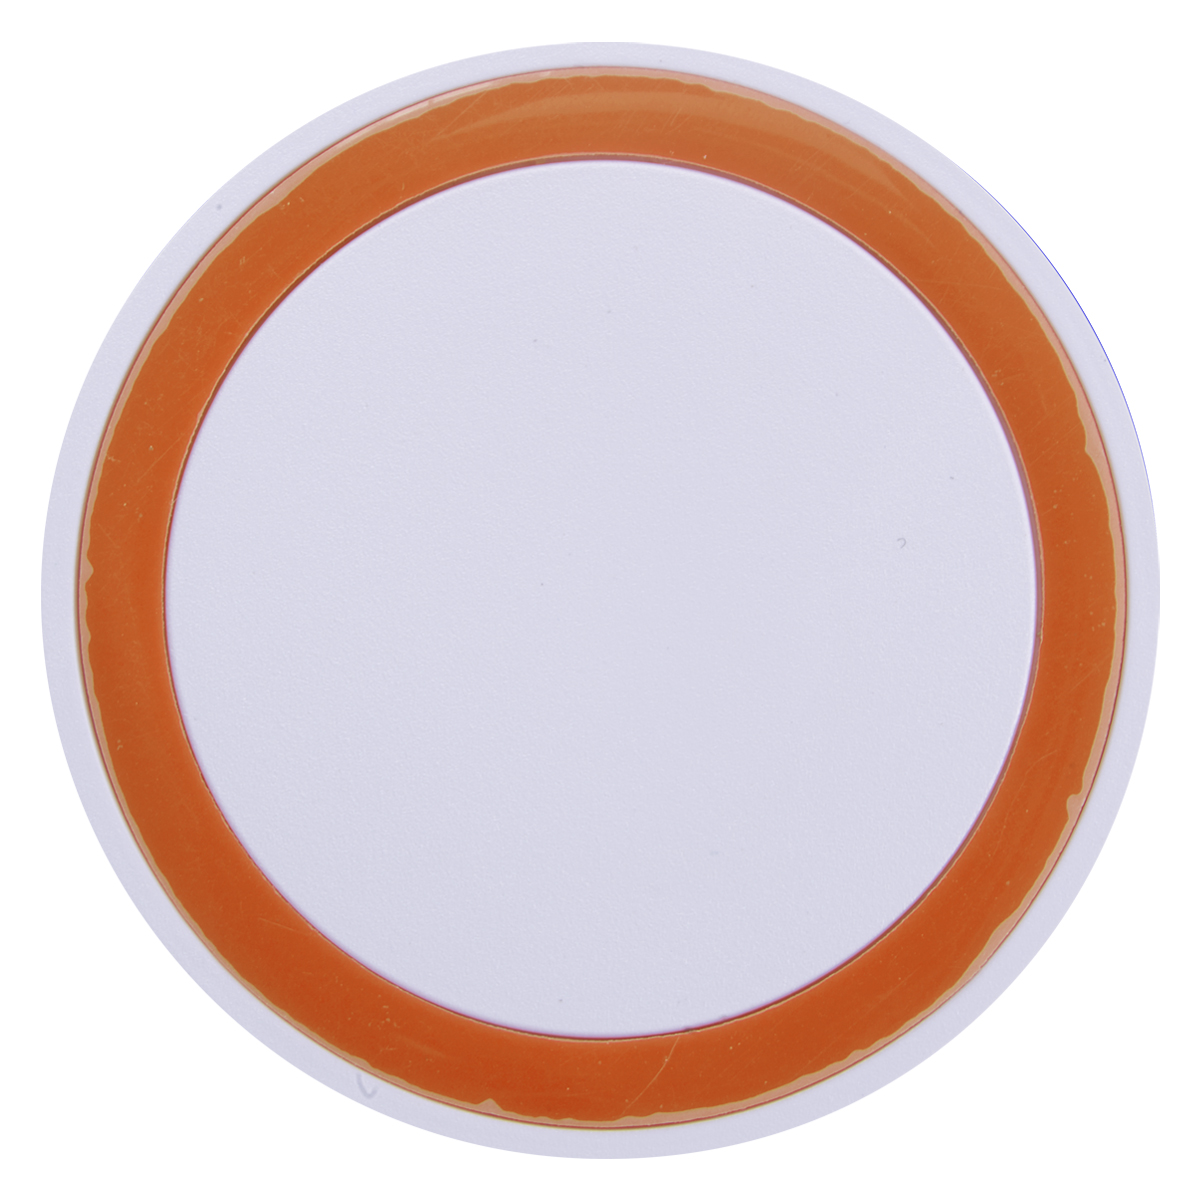 Two Tone Wireless Phone Charging Pad